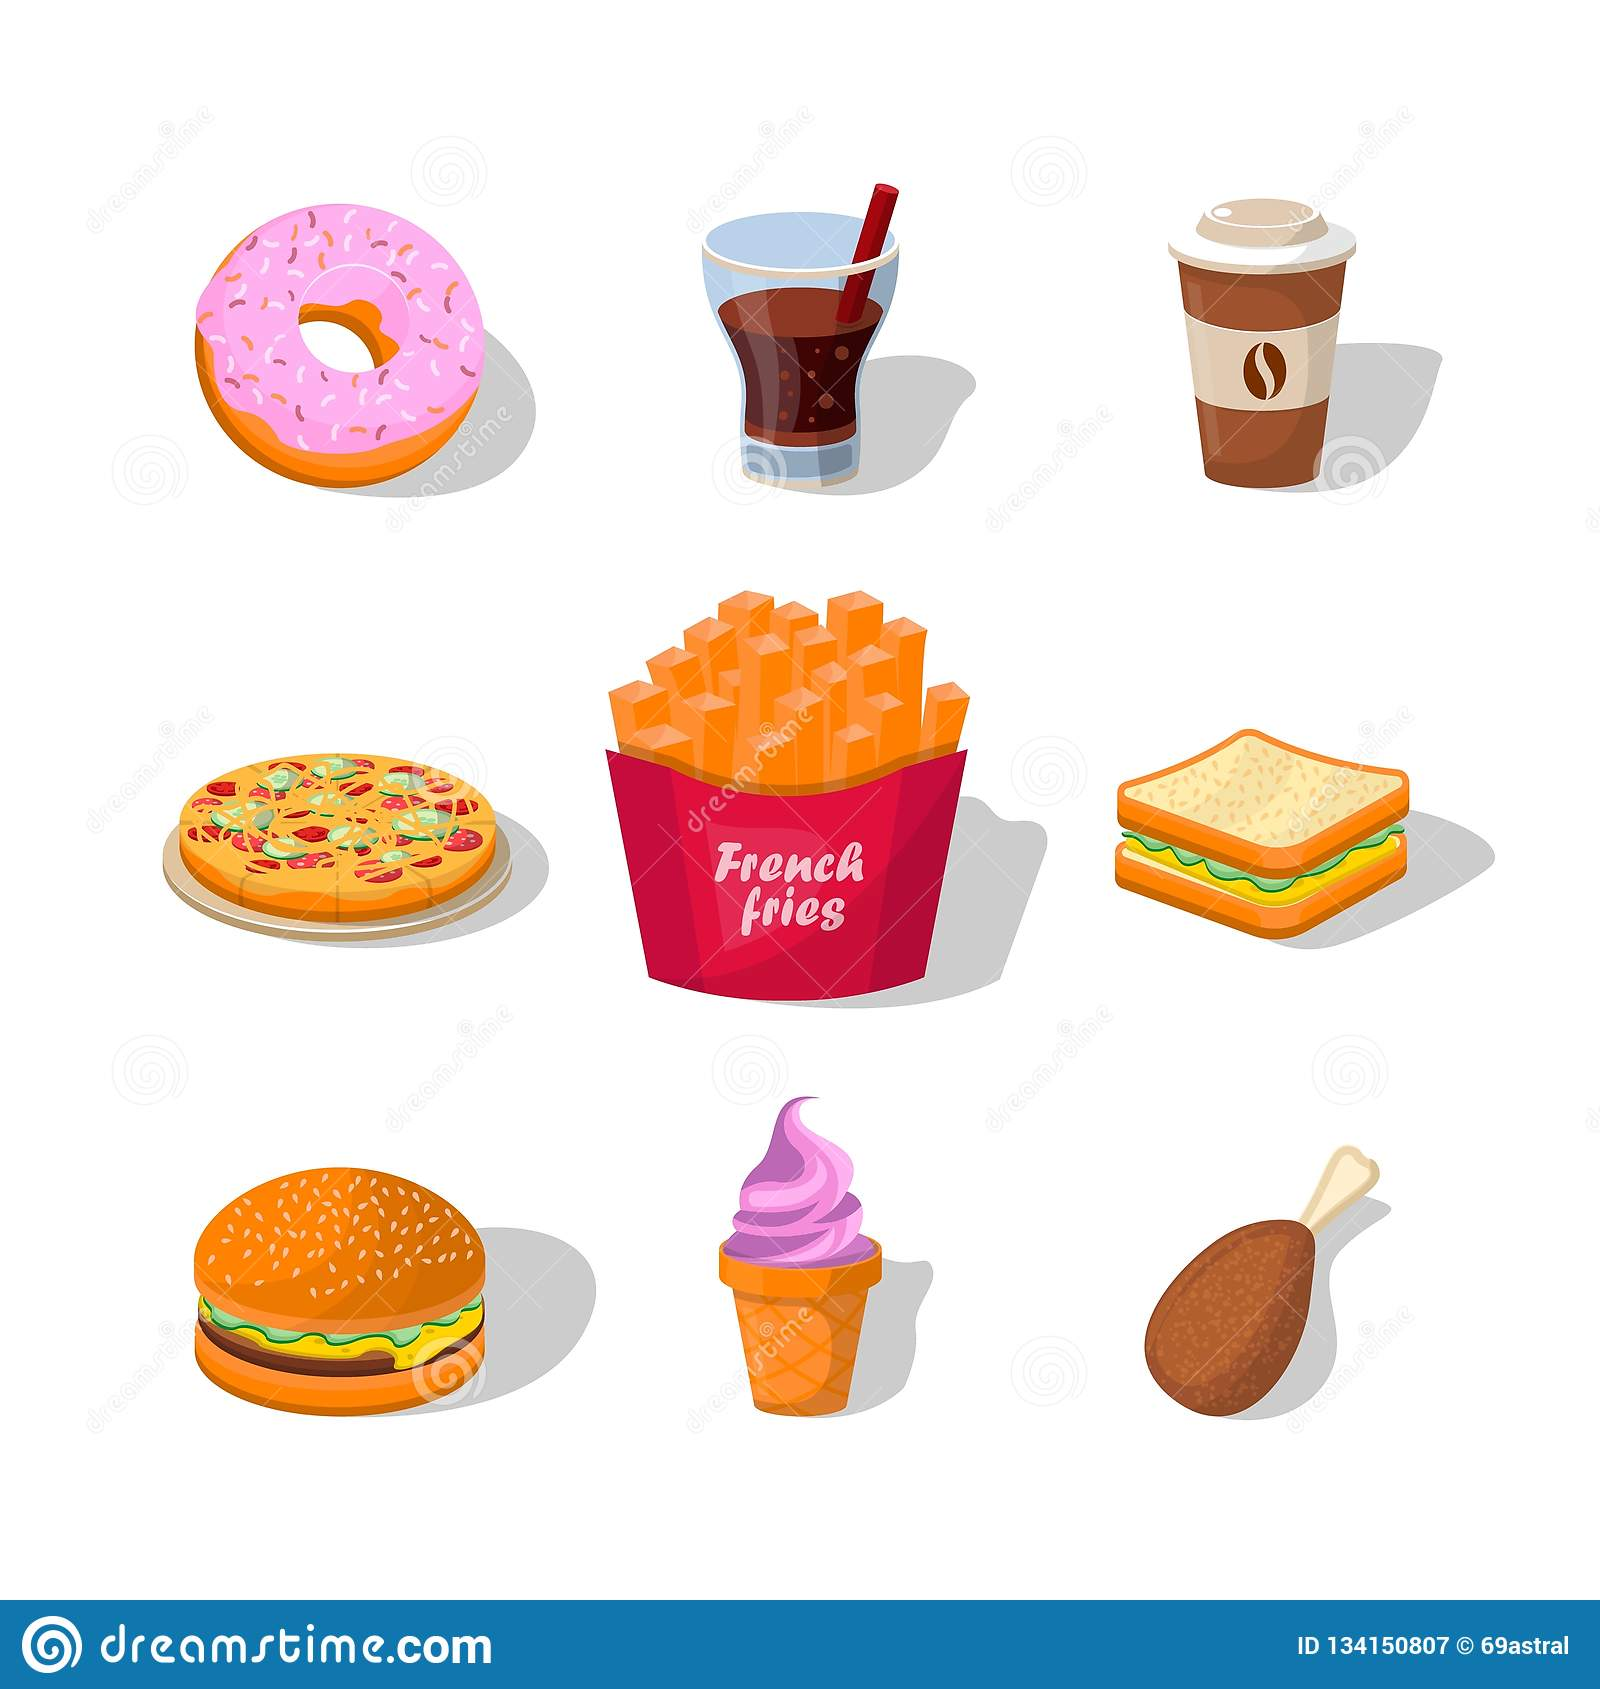 Flat fast food colorful illustrations vector isolated on white background.